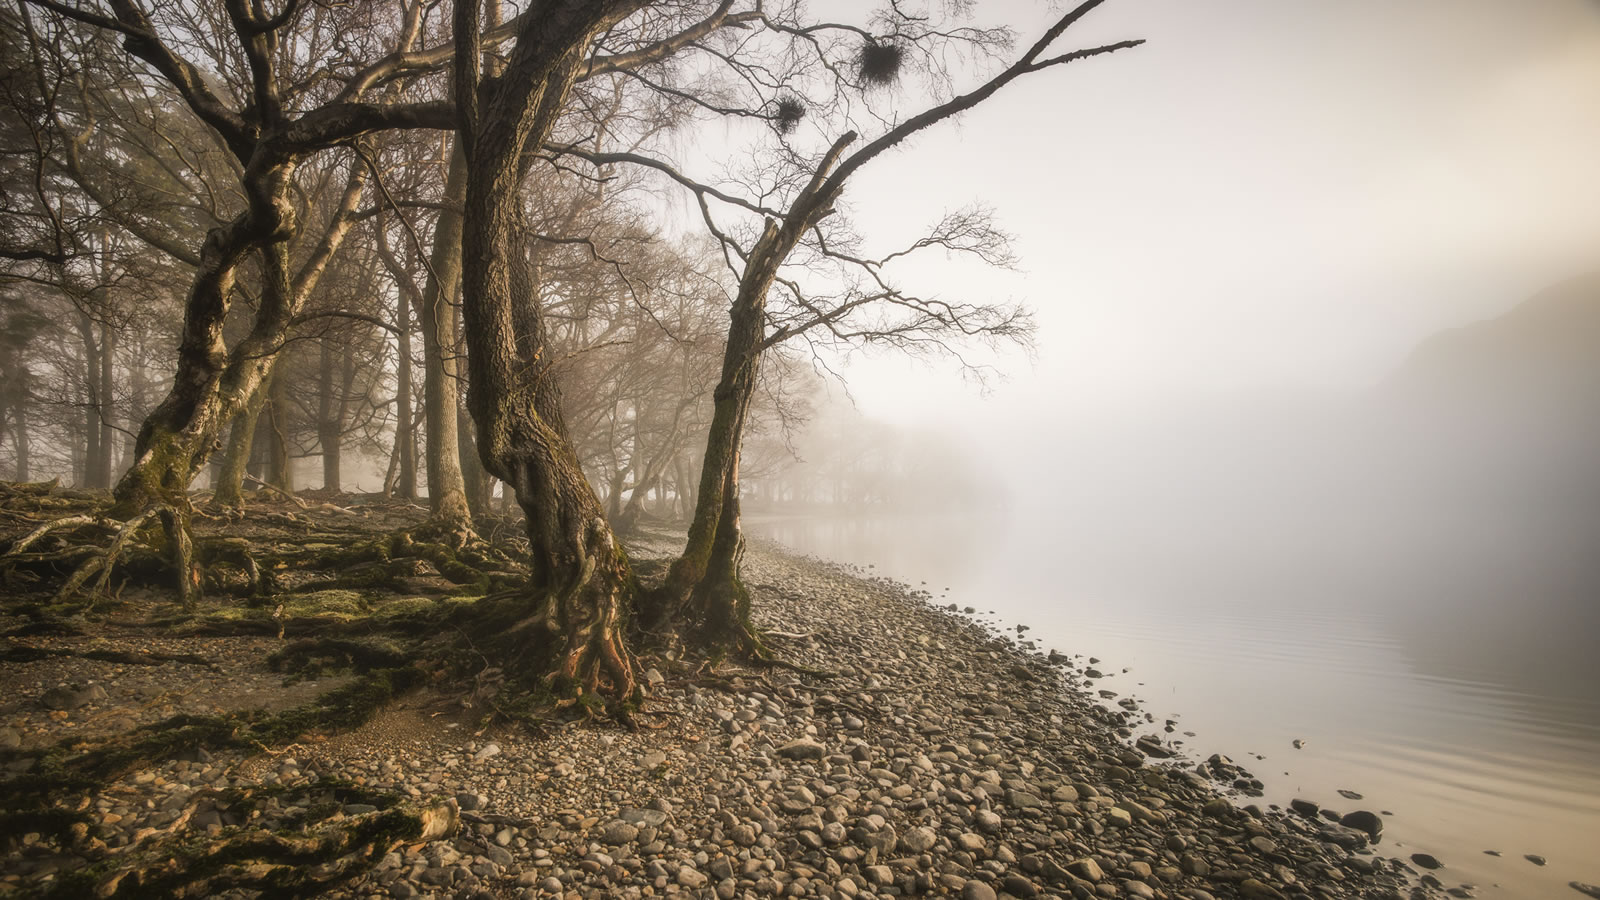 The Distance by Mark Littlejohn